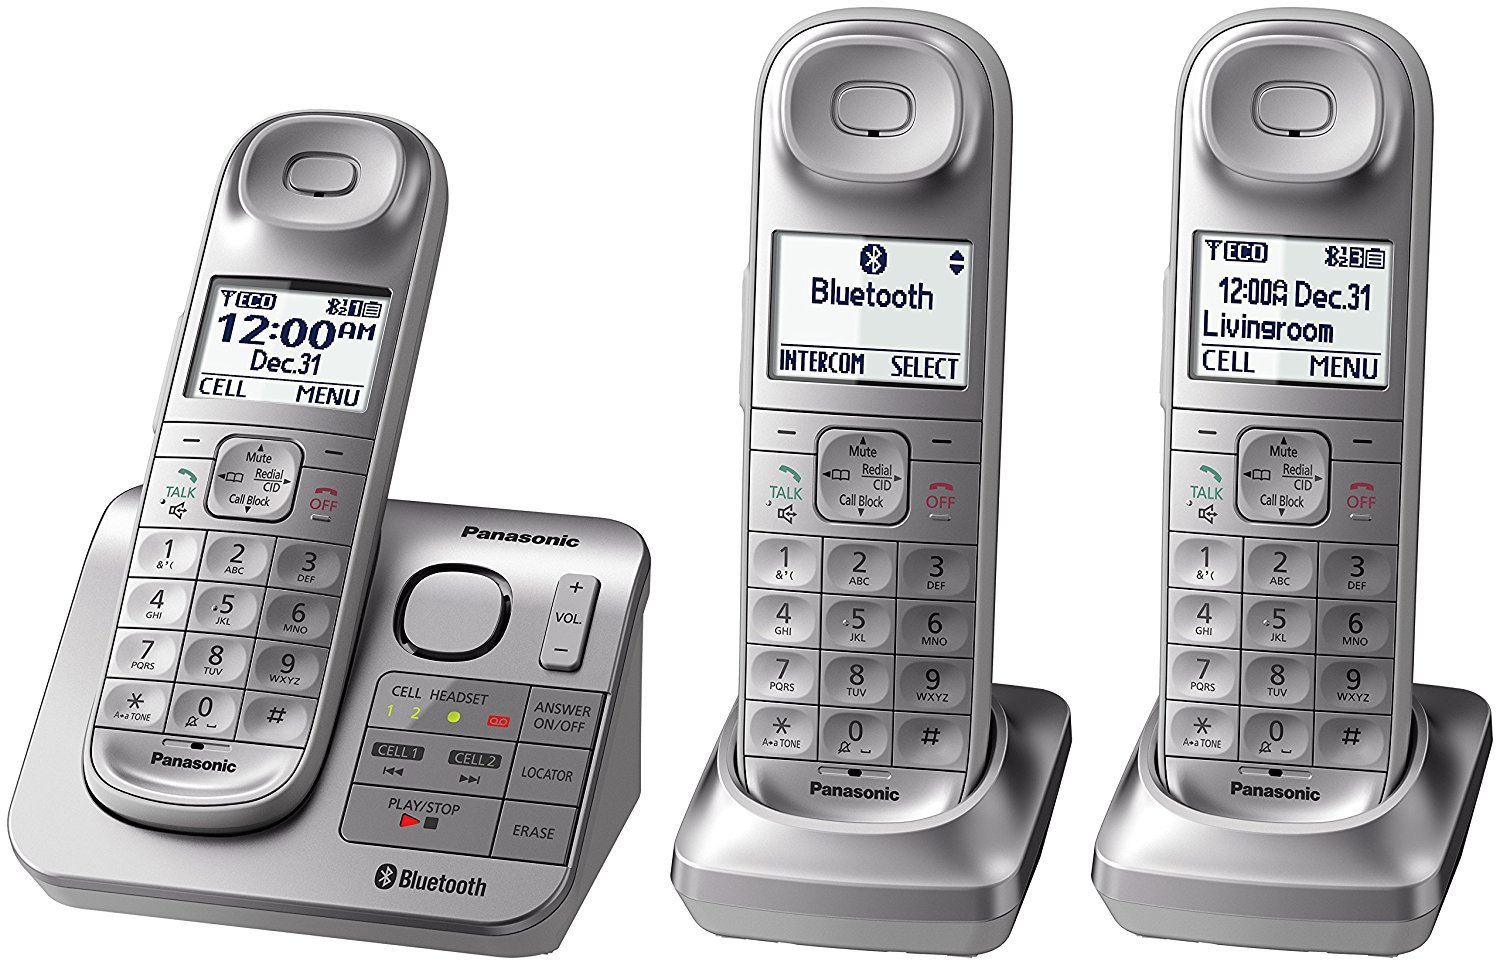 Panasonic KX-TGL463S Dect 6.0 link2Cell Bluetooth 3-Handset Landline Telephone, Silver & White (Renewed)